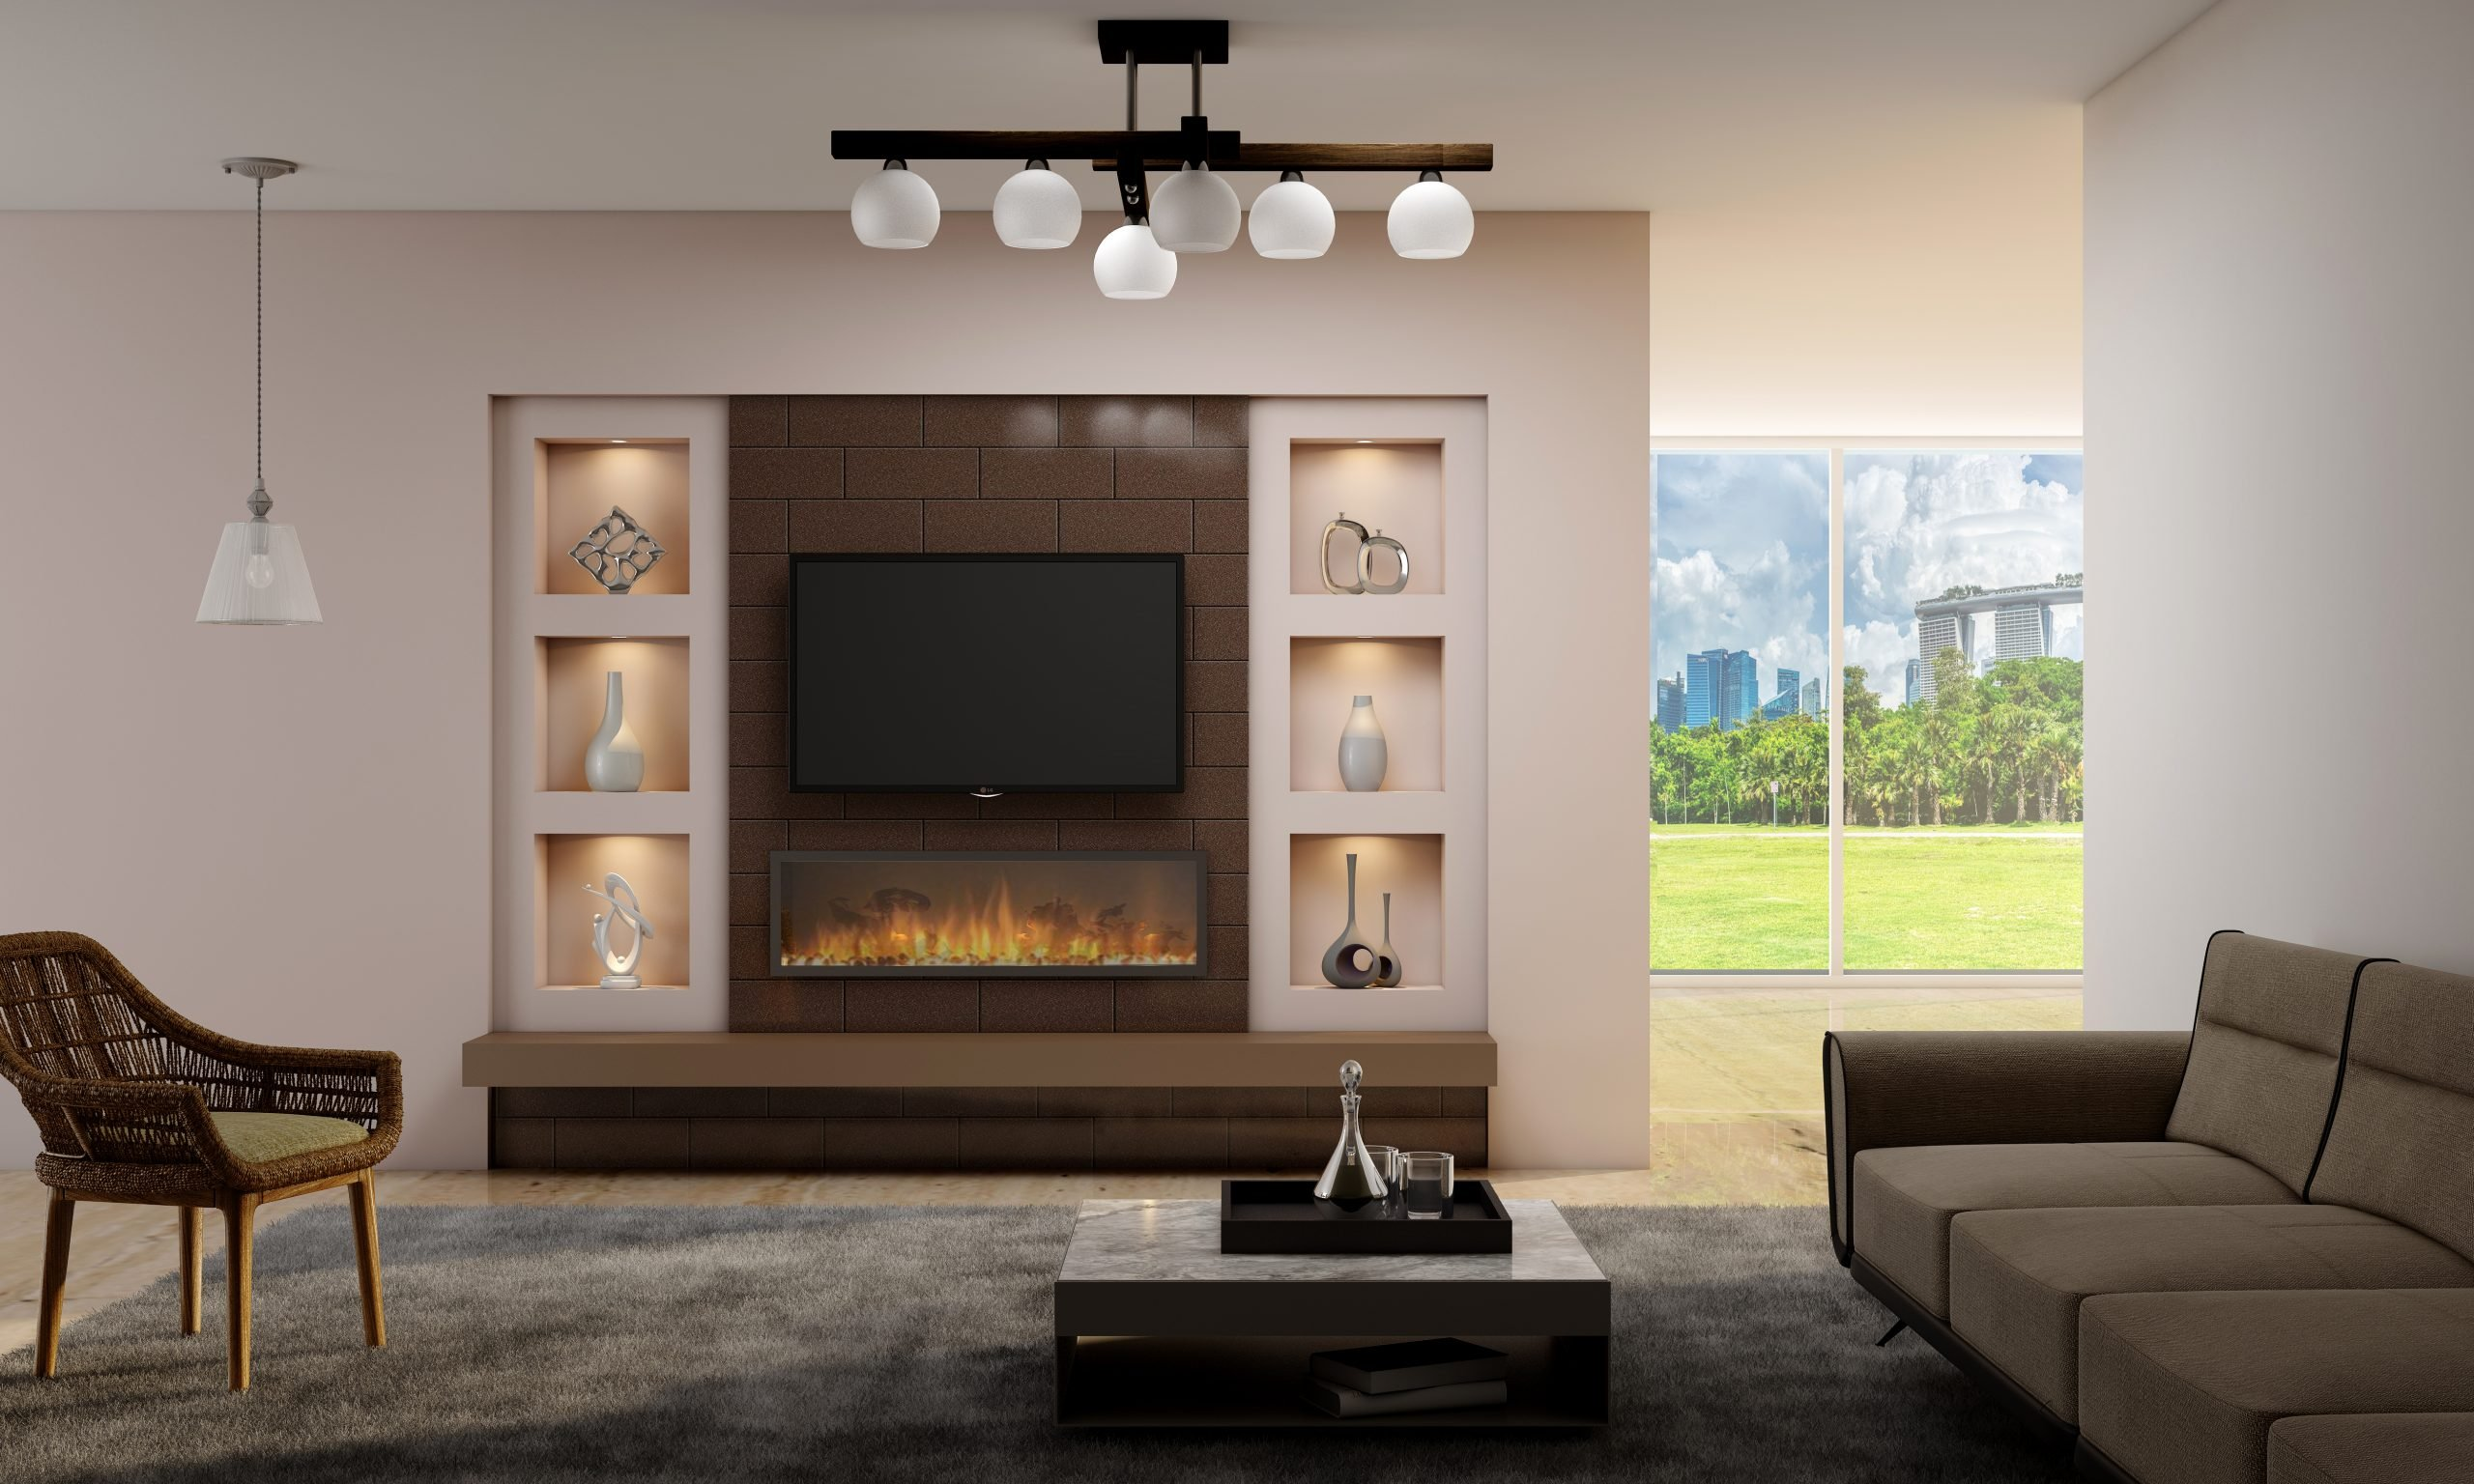 Wall Mounted TV Unit with Lounge Set